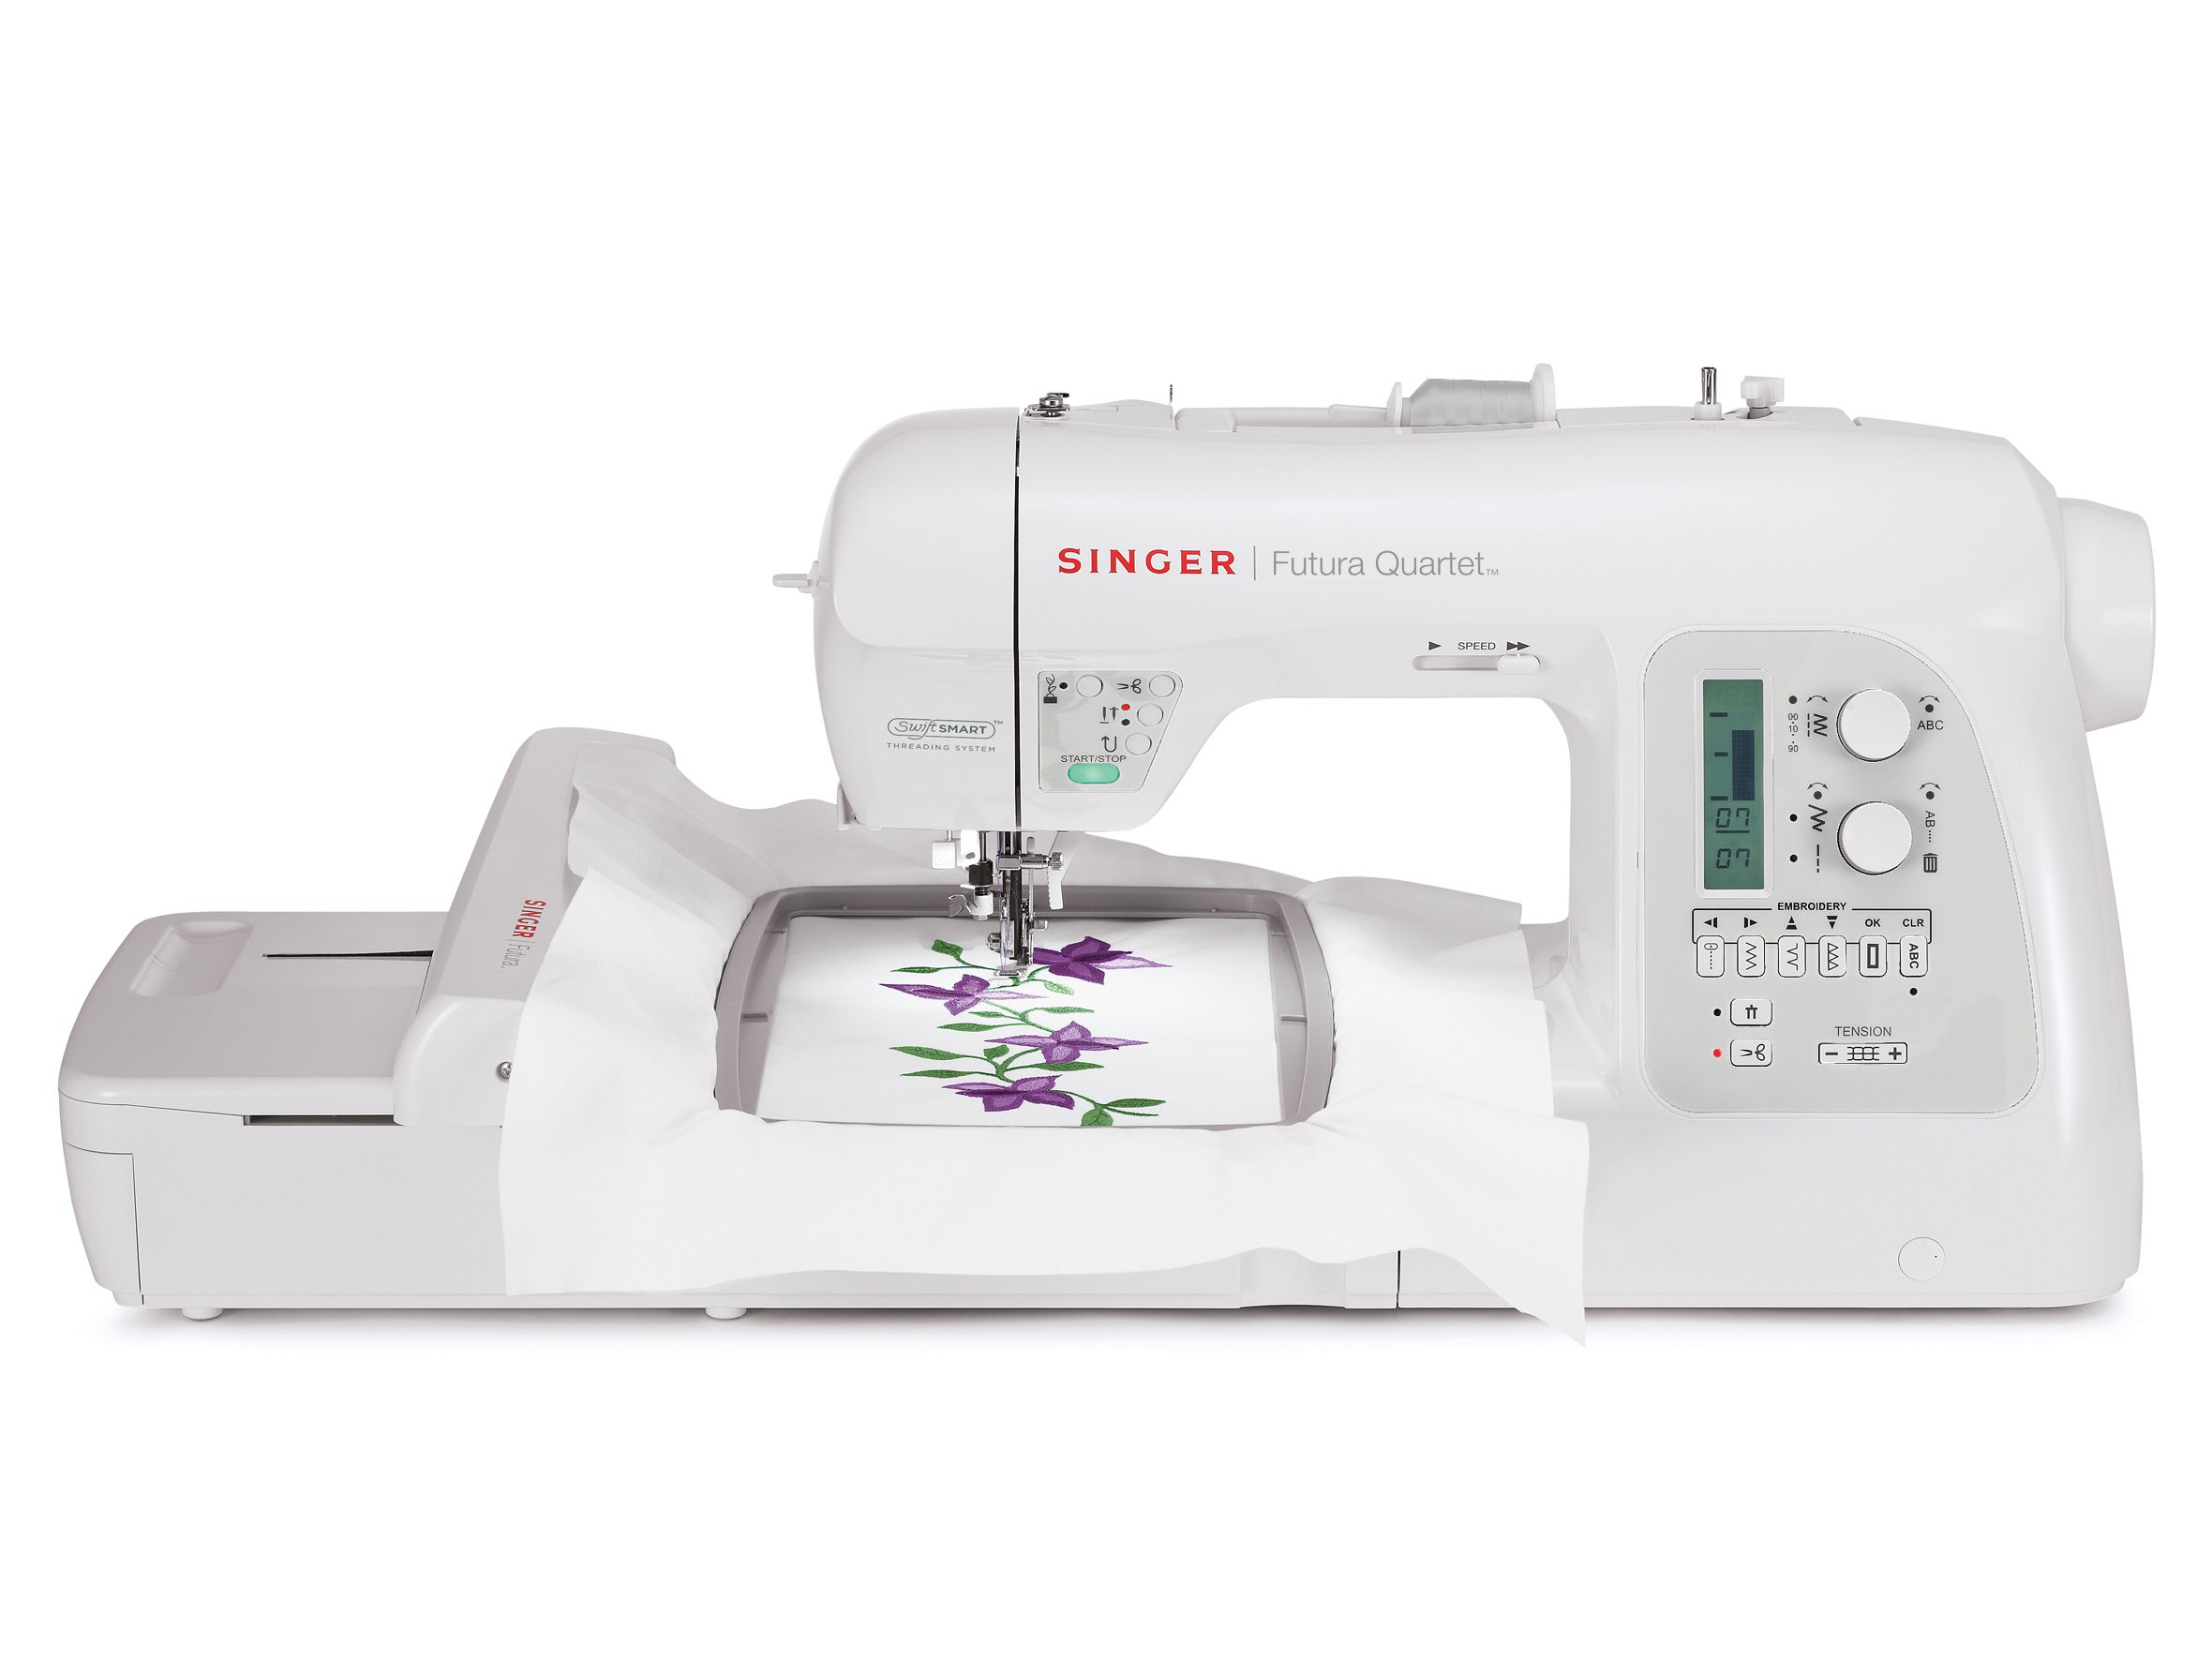 Get Quotations · SINGER 4-in-1 Futura Quartet Portable Sewing, Embroidery,  Quilting and Serging